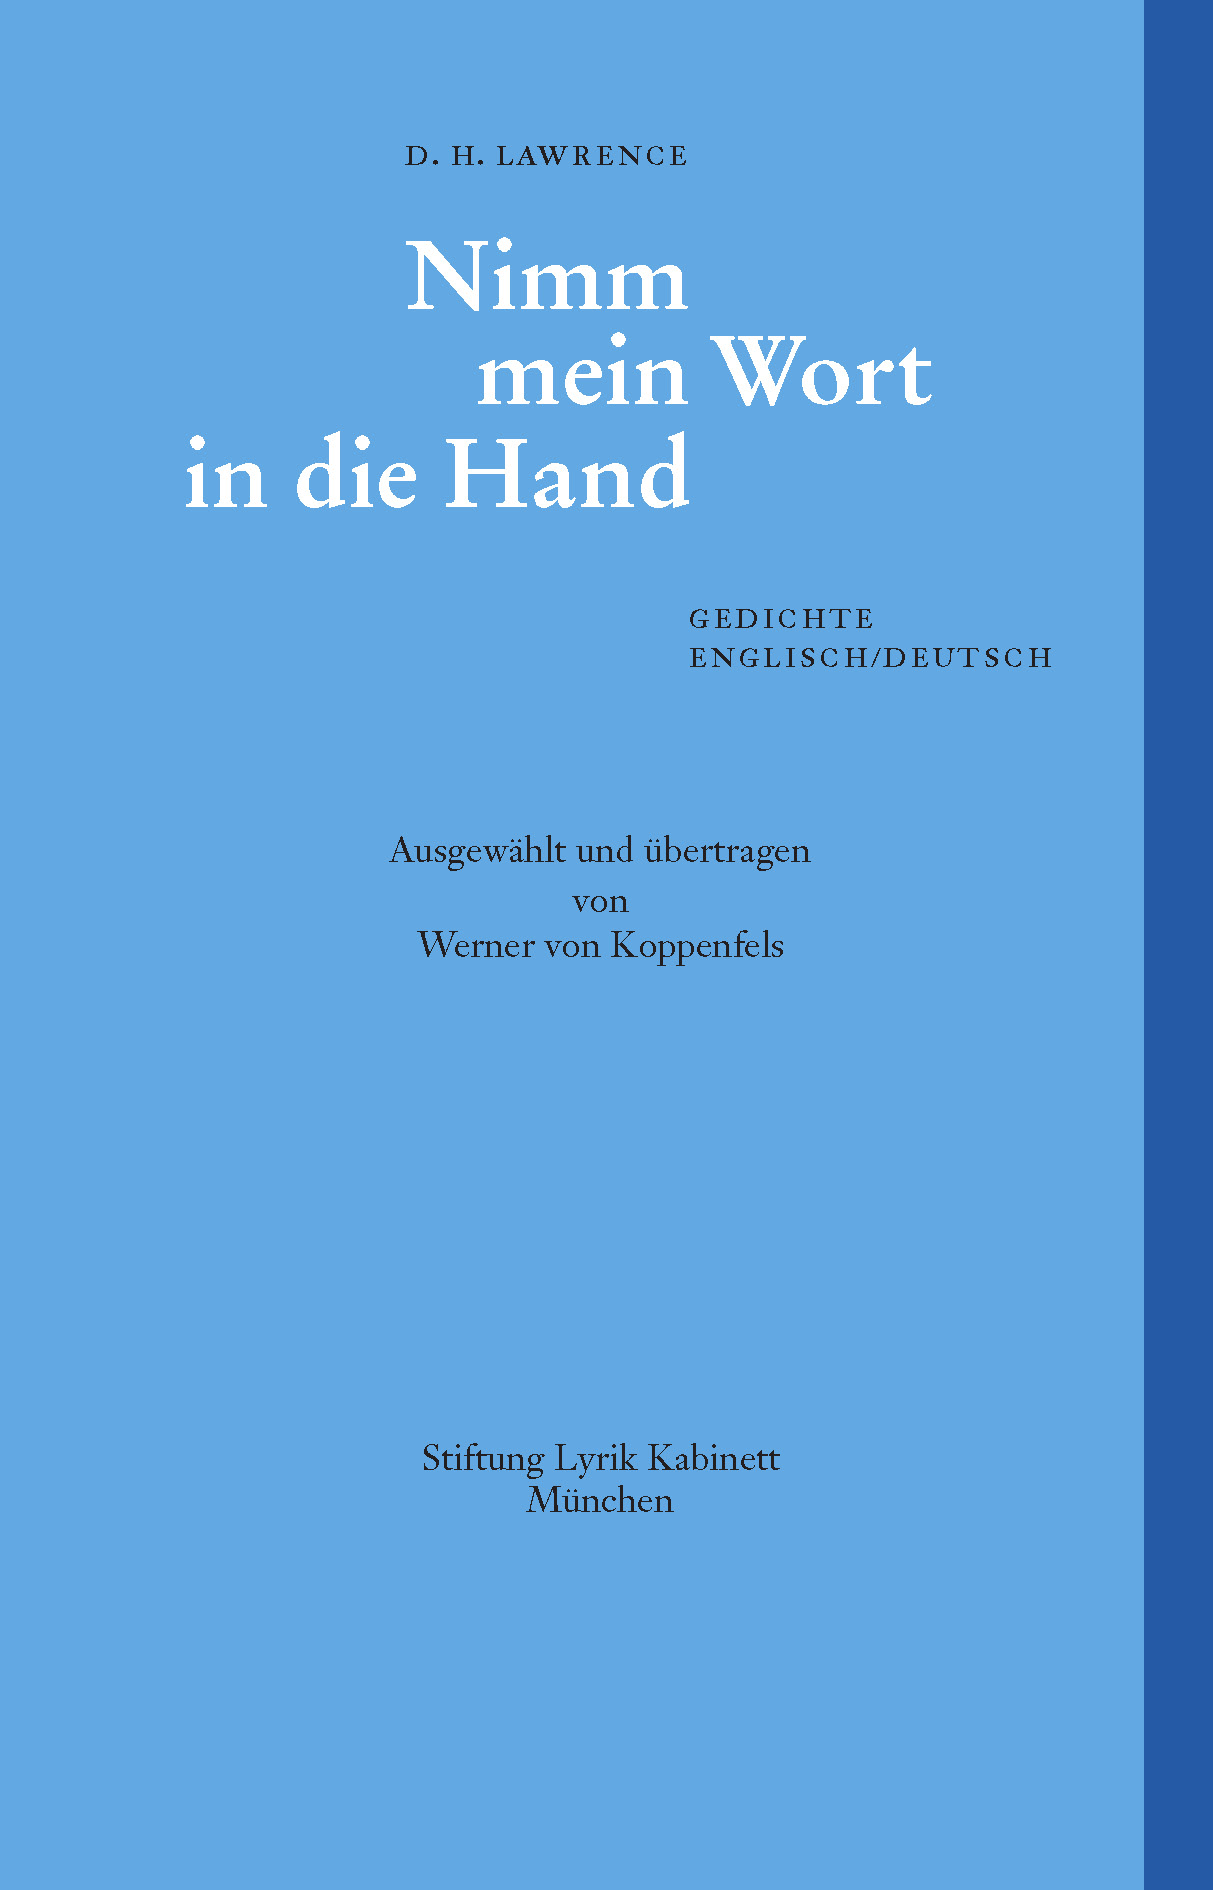 Buch_Lyrik_Kabinett_19_Lawrence